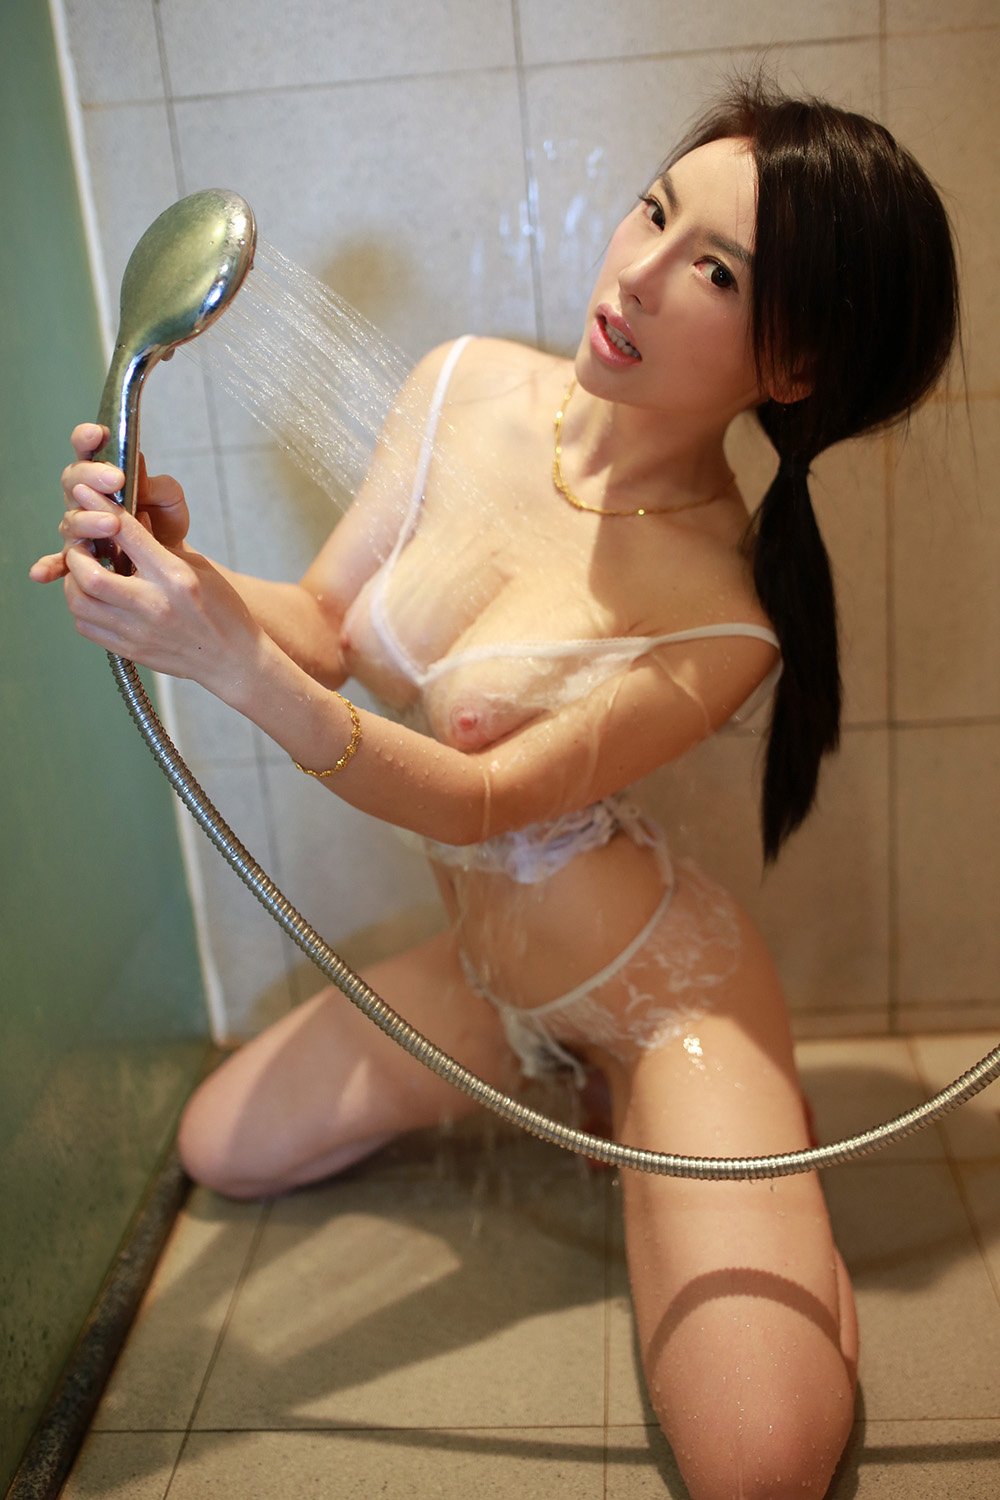 660A1408 - MYGIRL NO.27 Photo Nude Hot